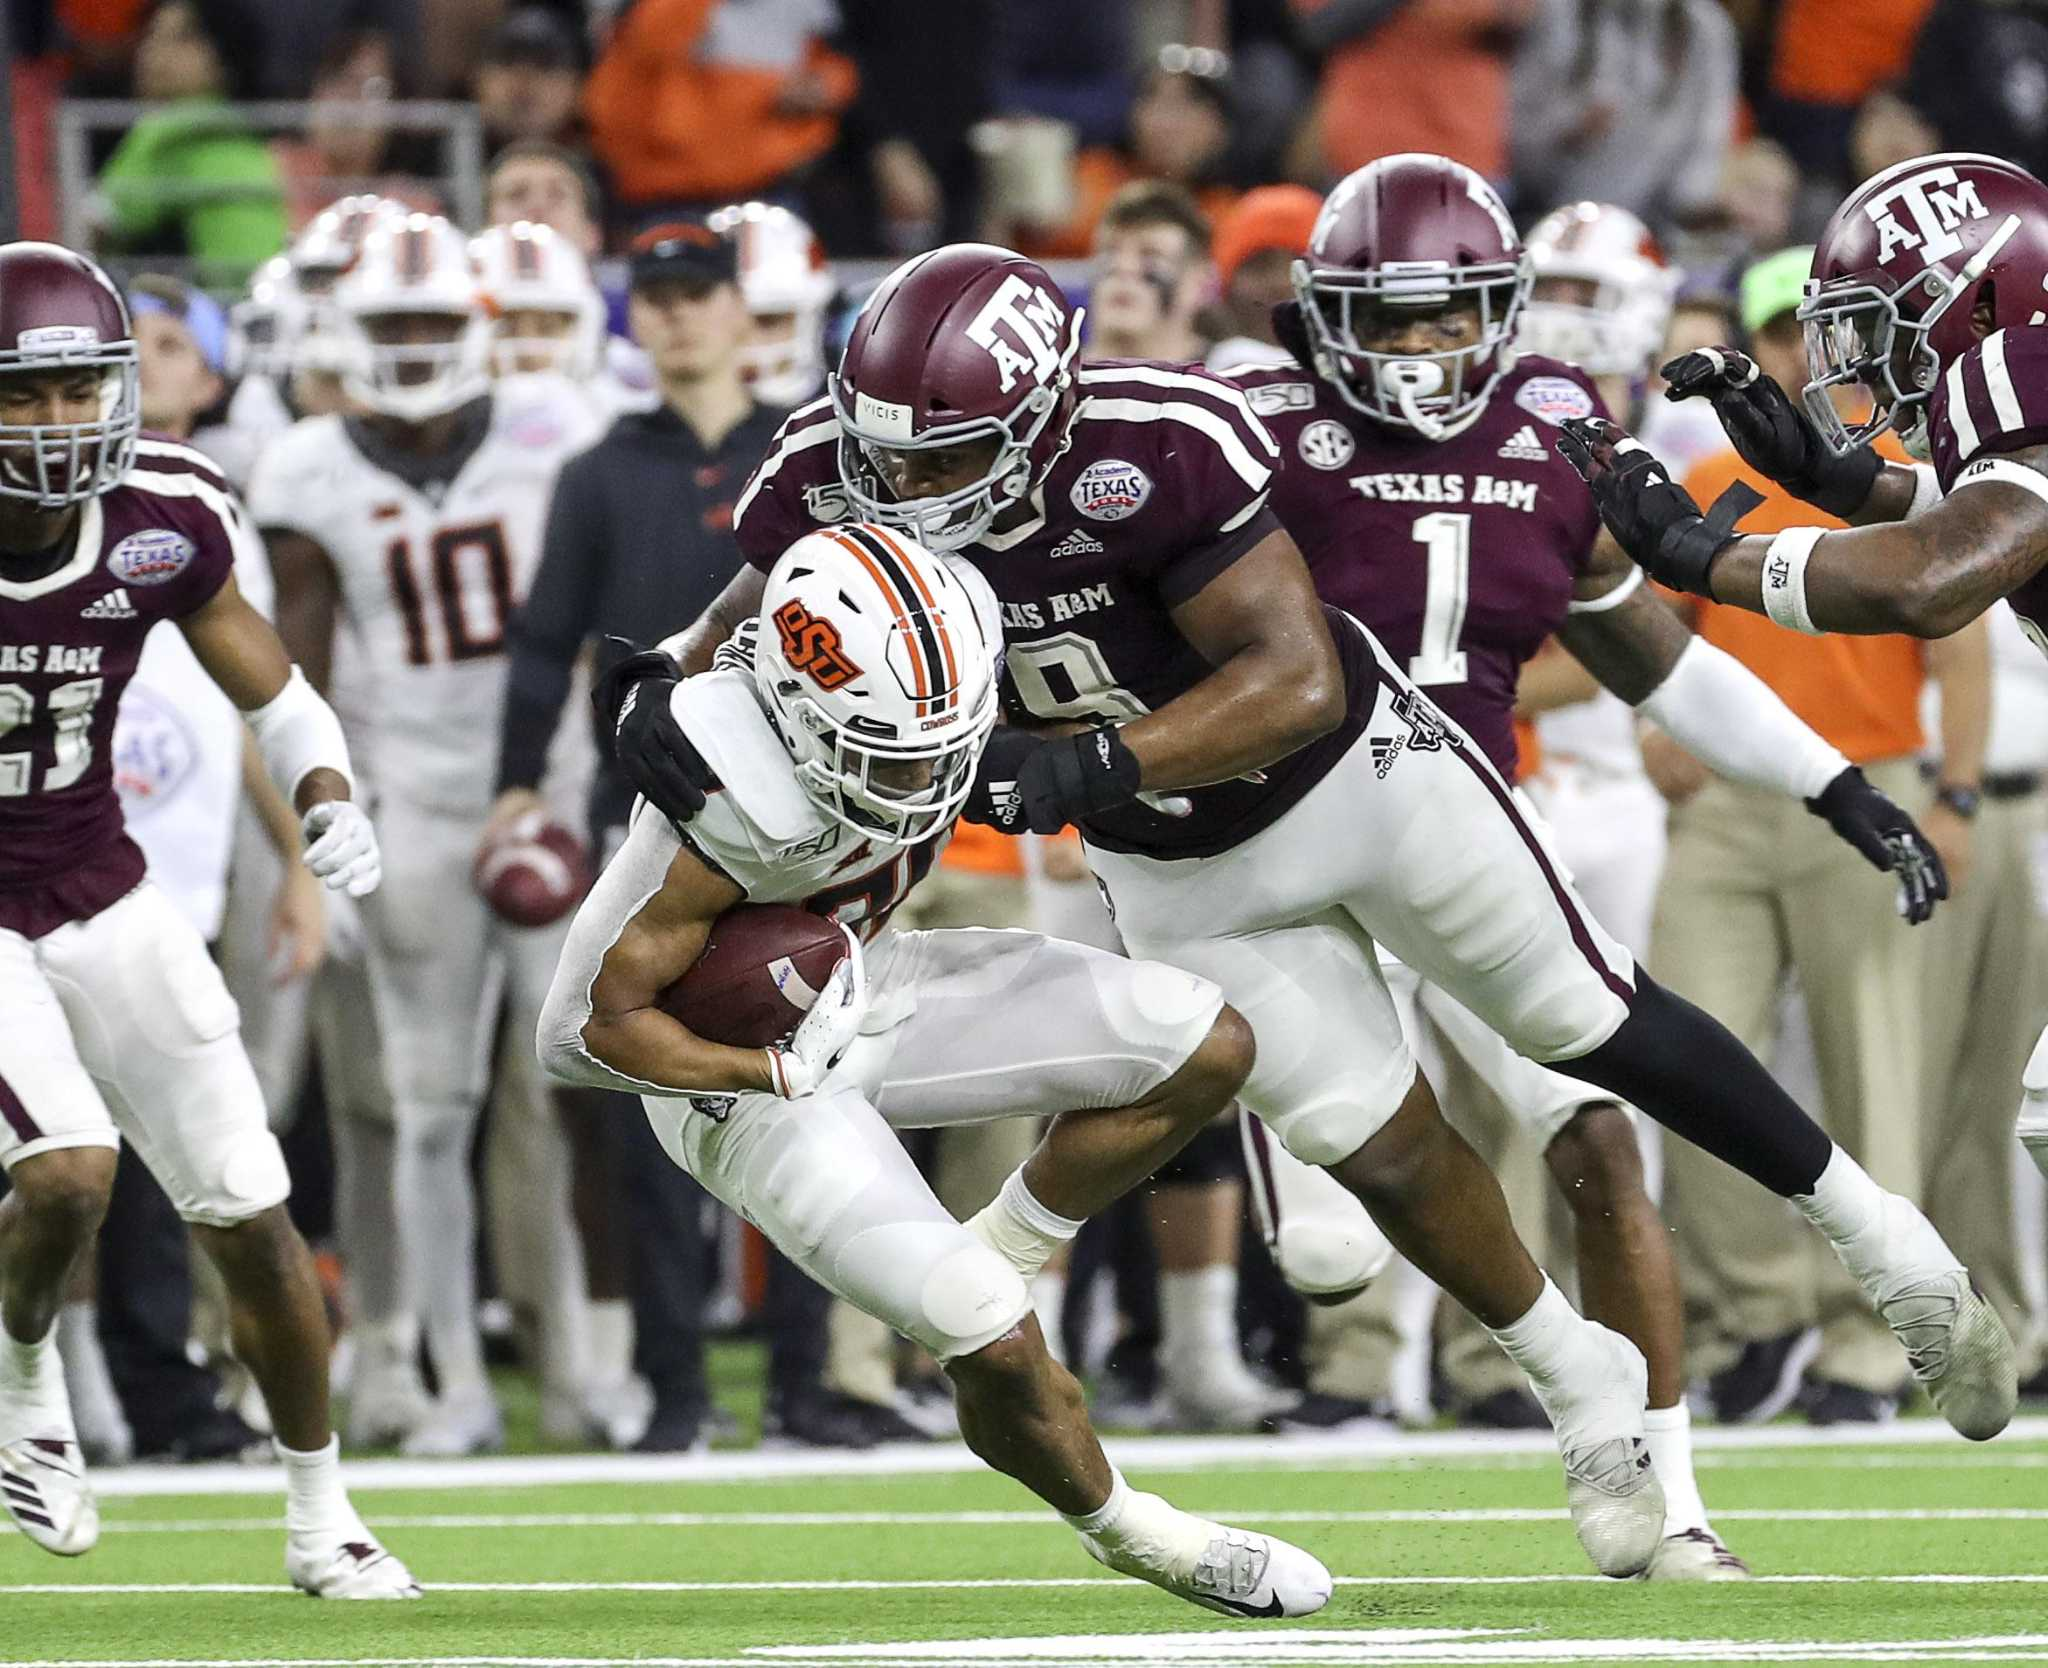 Texas A&M on football: 'We're not going to give up'